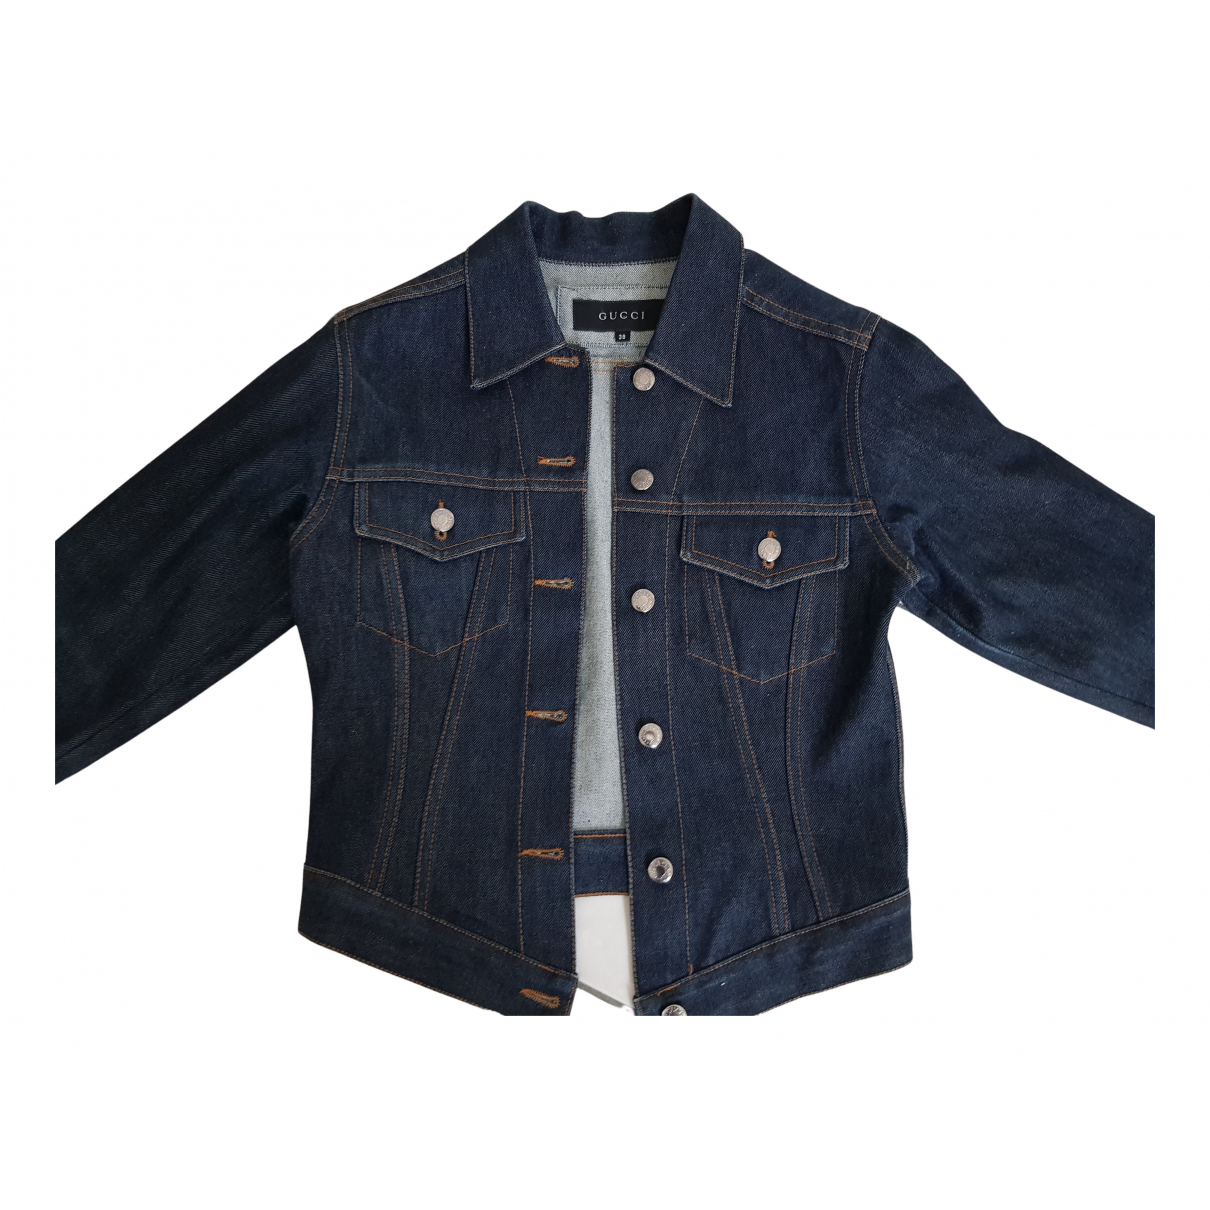 Gucci N Blue Denim - Jeans jacket for Women 38 IT